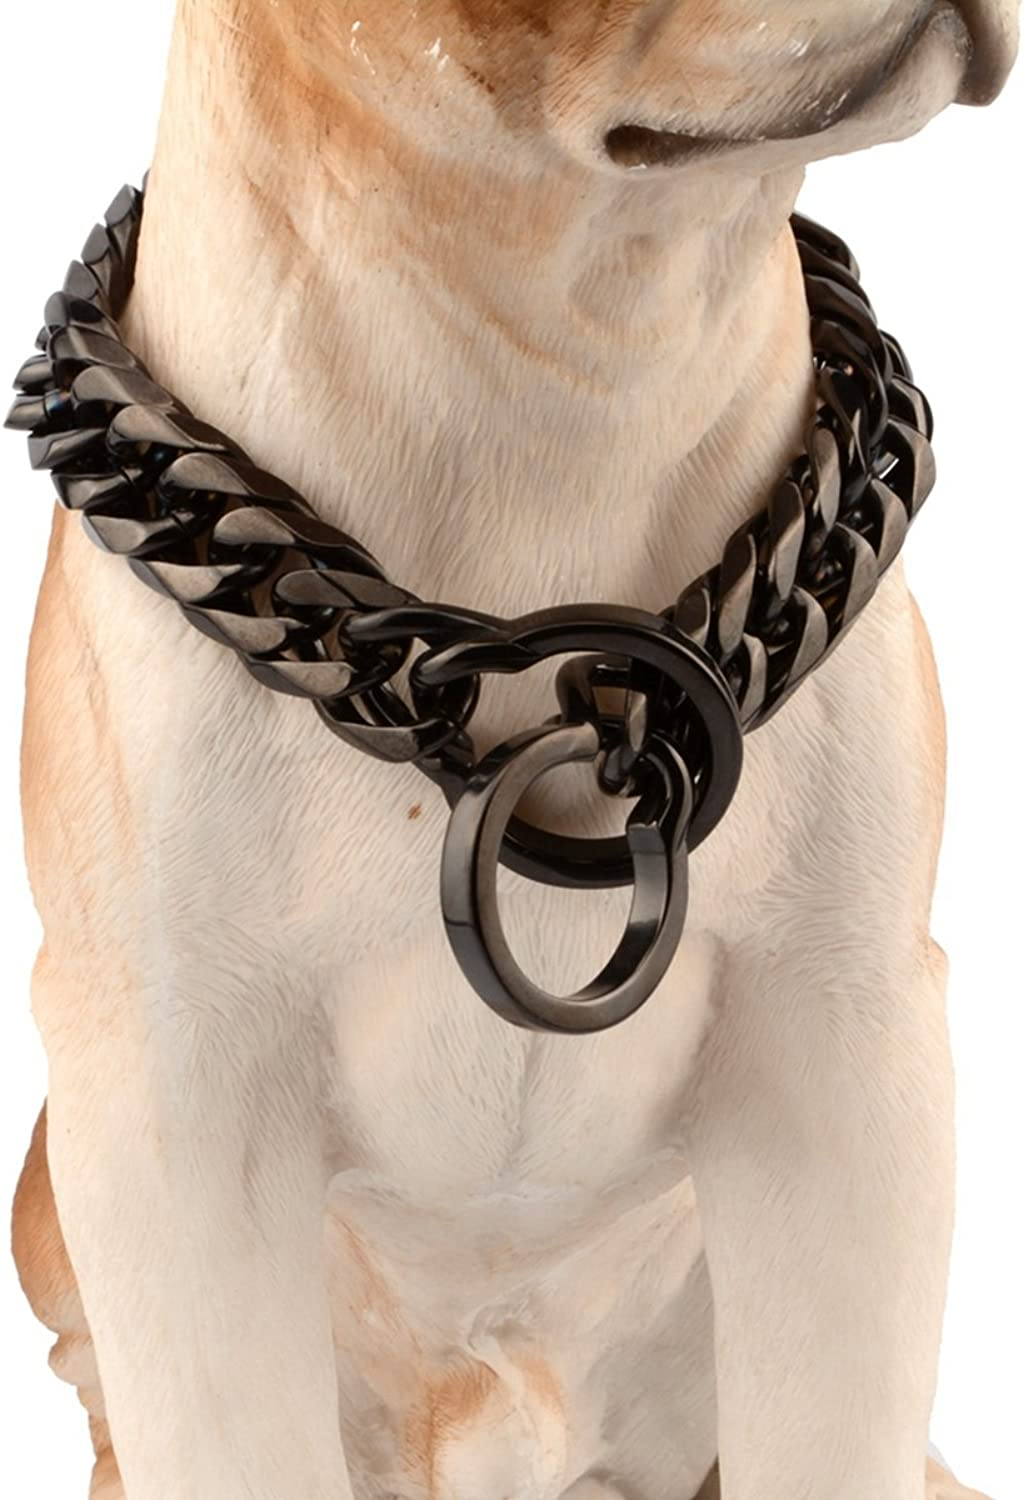 Bestss Jewelry Black Solid Stainless Steel Pet Dog Choke Curb Chain Collar for Pit Bull,Bulldog, Big Breeds,16 18mm Wide,1436 Inches (16mm Wide, 22inch Recommend Dog's Neck 18inch)